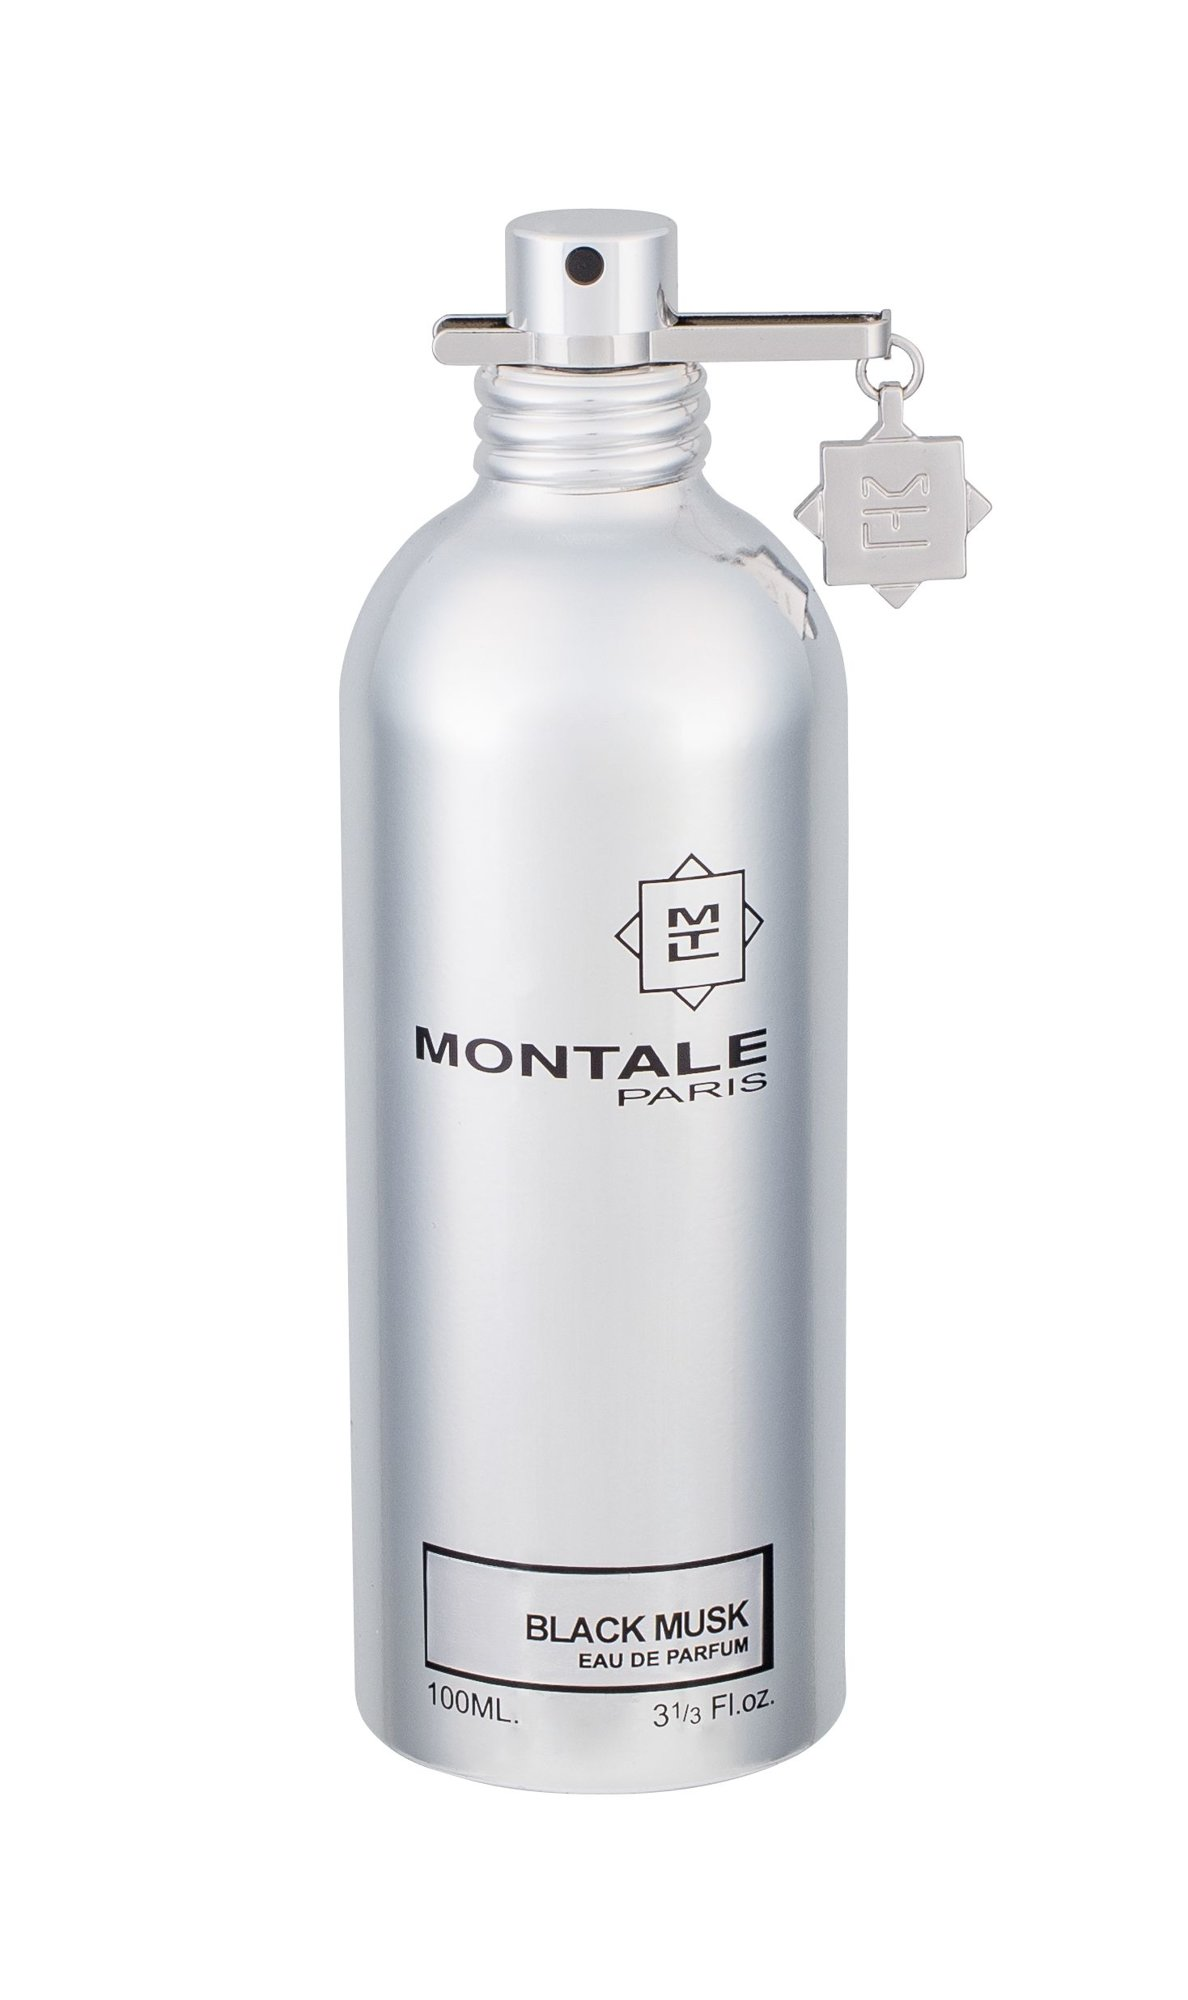 Montale Paris Black Musk, edp 100ml